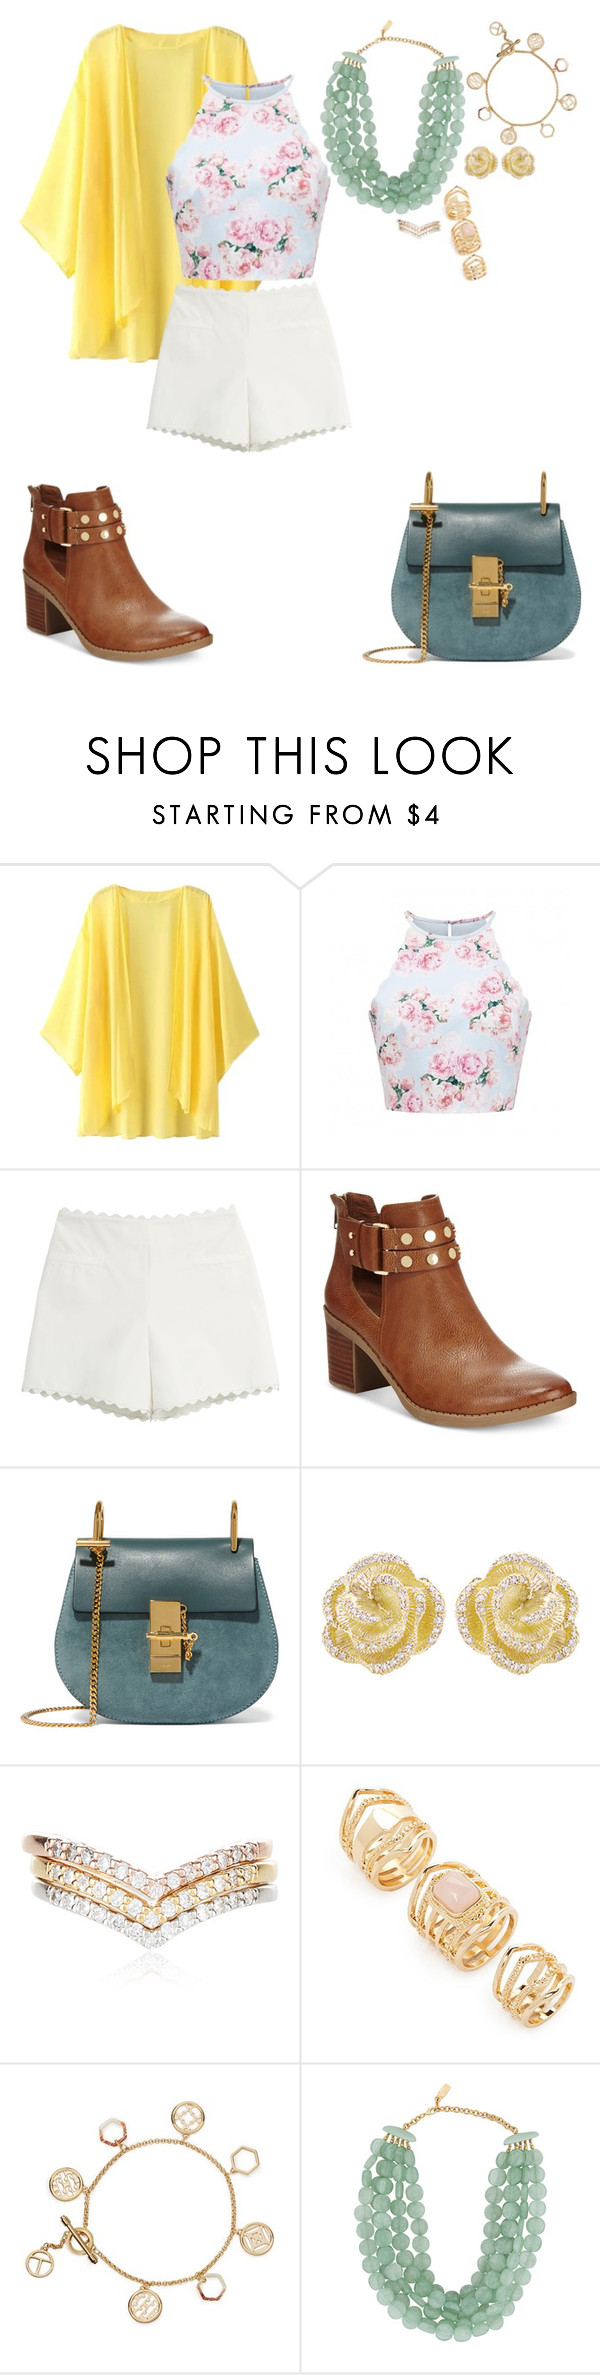 """""""Spring cleaning"""" by brook-wilson ❤ liked on Polyvore featuring Escalier, Forever New, Moschino Cheap & Chic, Bar III, Chloé, Effy Jewelry, Accessorize, Forever 21, Tory Burch and Dominique Denaive"""